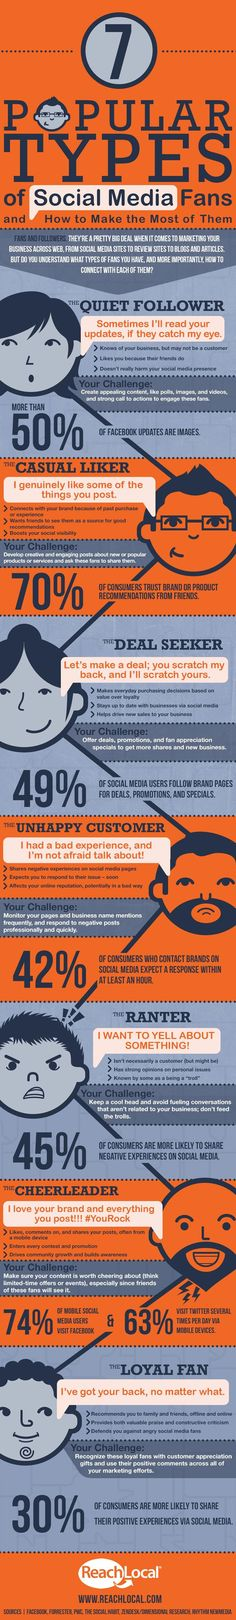 Do these types of social media fans look familiar? See some of the most popular types of fans on social media and learn what you can do to connect with them in this infographic! Social Marketing, Inbound Marketing, Marketing Digital, Marketing Trends, Facebook Marketing, Content Marketing, Internet Marketing, Marketing Articles, Viral Marketing